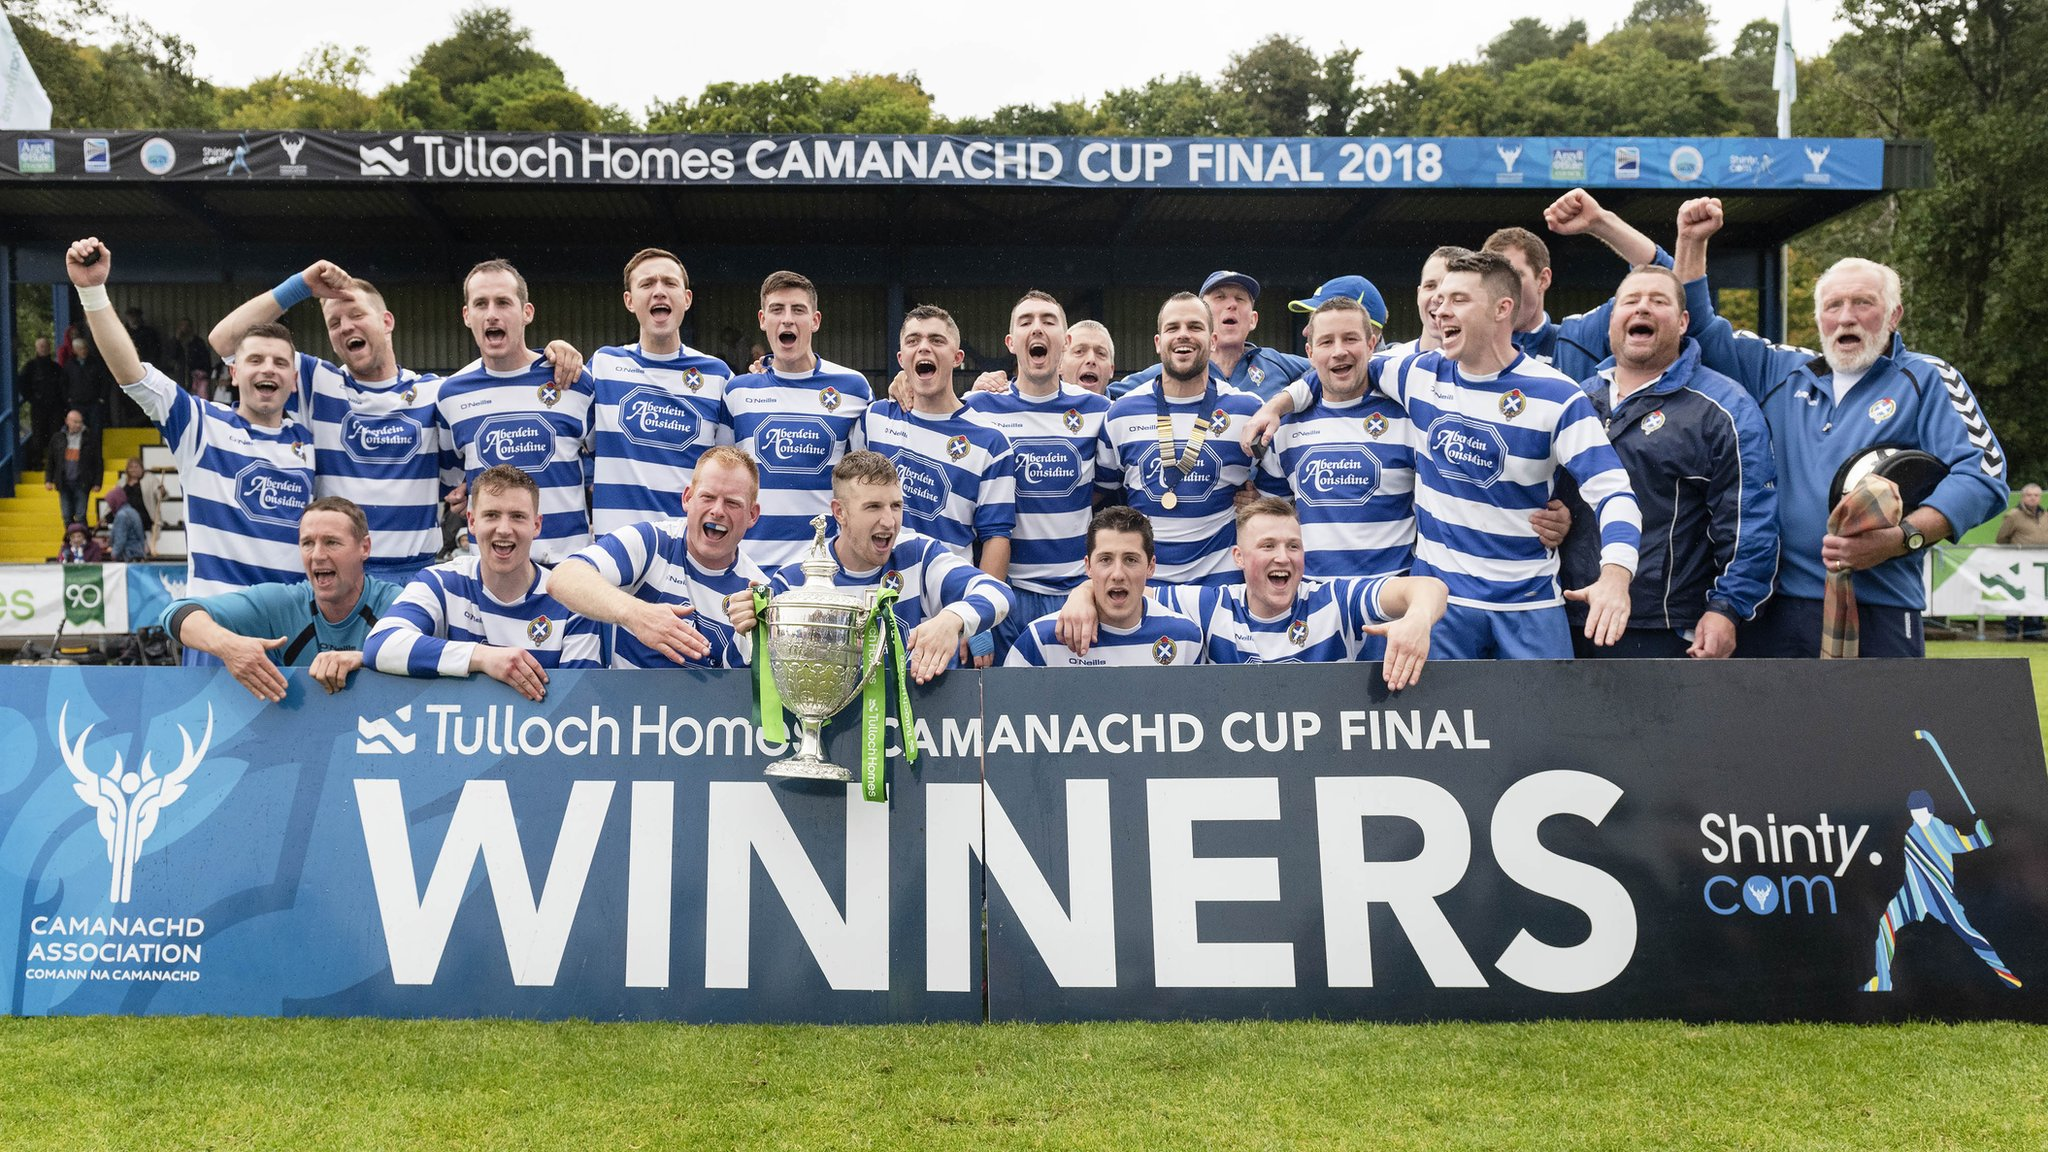 Shinty: Newtonmore make it three Camanachd Cups in a row with victory over Lovat